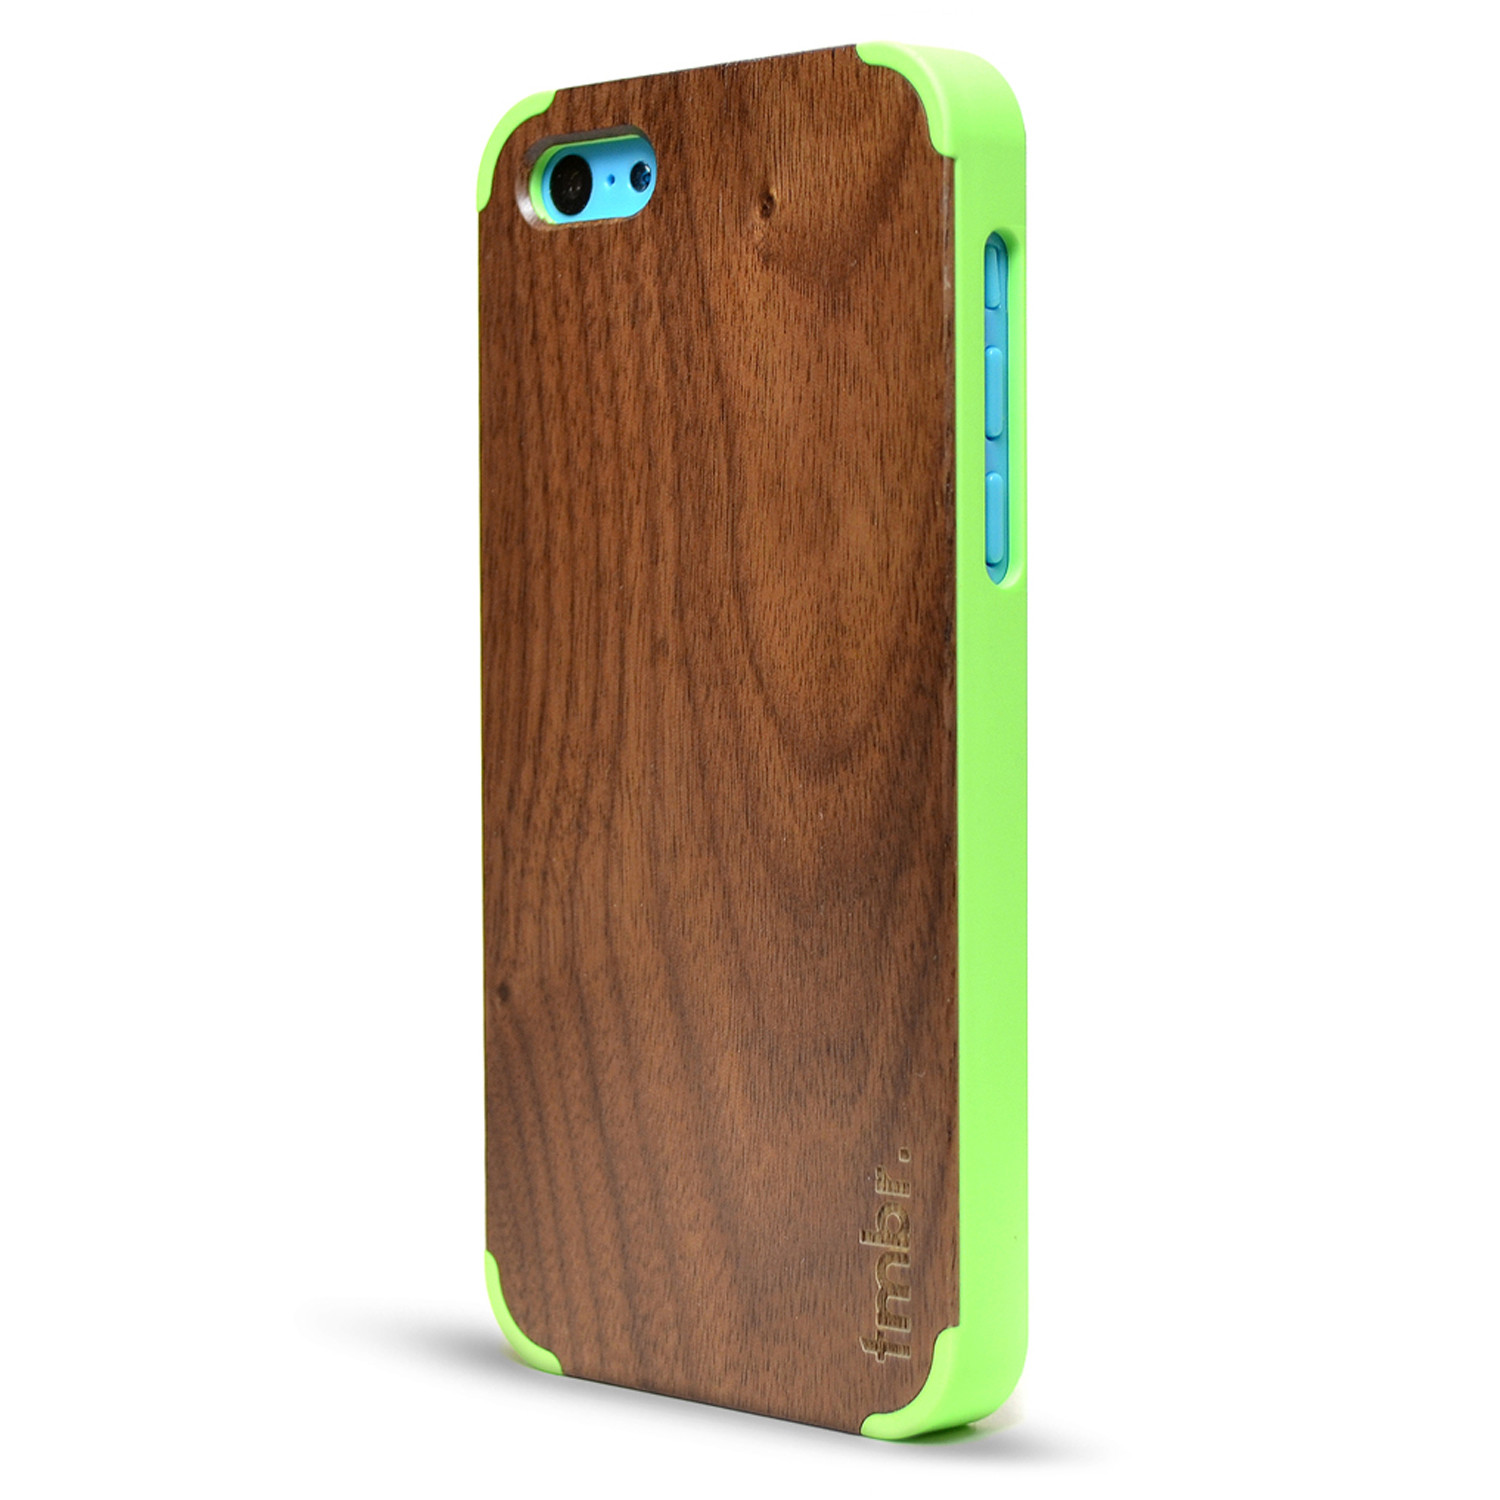 green case Results 1 48 of 389365 green casescovers for iphone 4 for iphone 8 7 plus case ultra thin soft shockproof silicone gel rubber tpu for iphone 7, 7 plus, 8, 8 plus, military grade shockproof cover lifetime warranty 1689amazoncom griffin survivor military duty case and belt clip for iphone 4 4s olive green army color retail packaging.